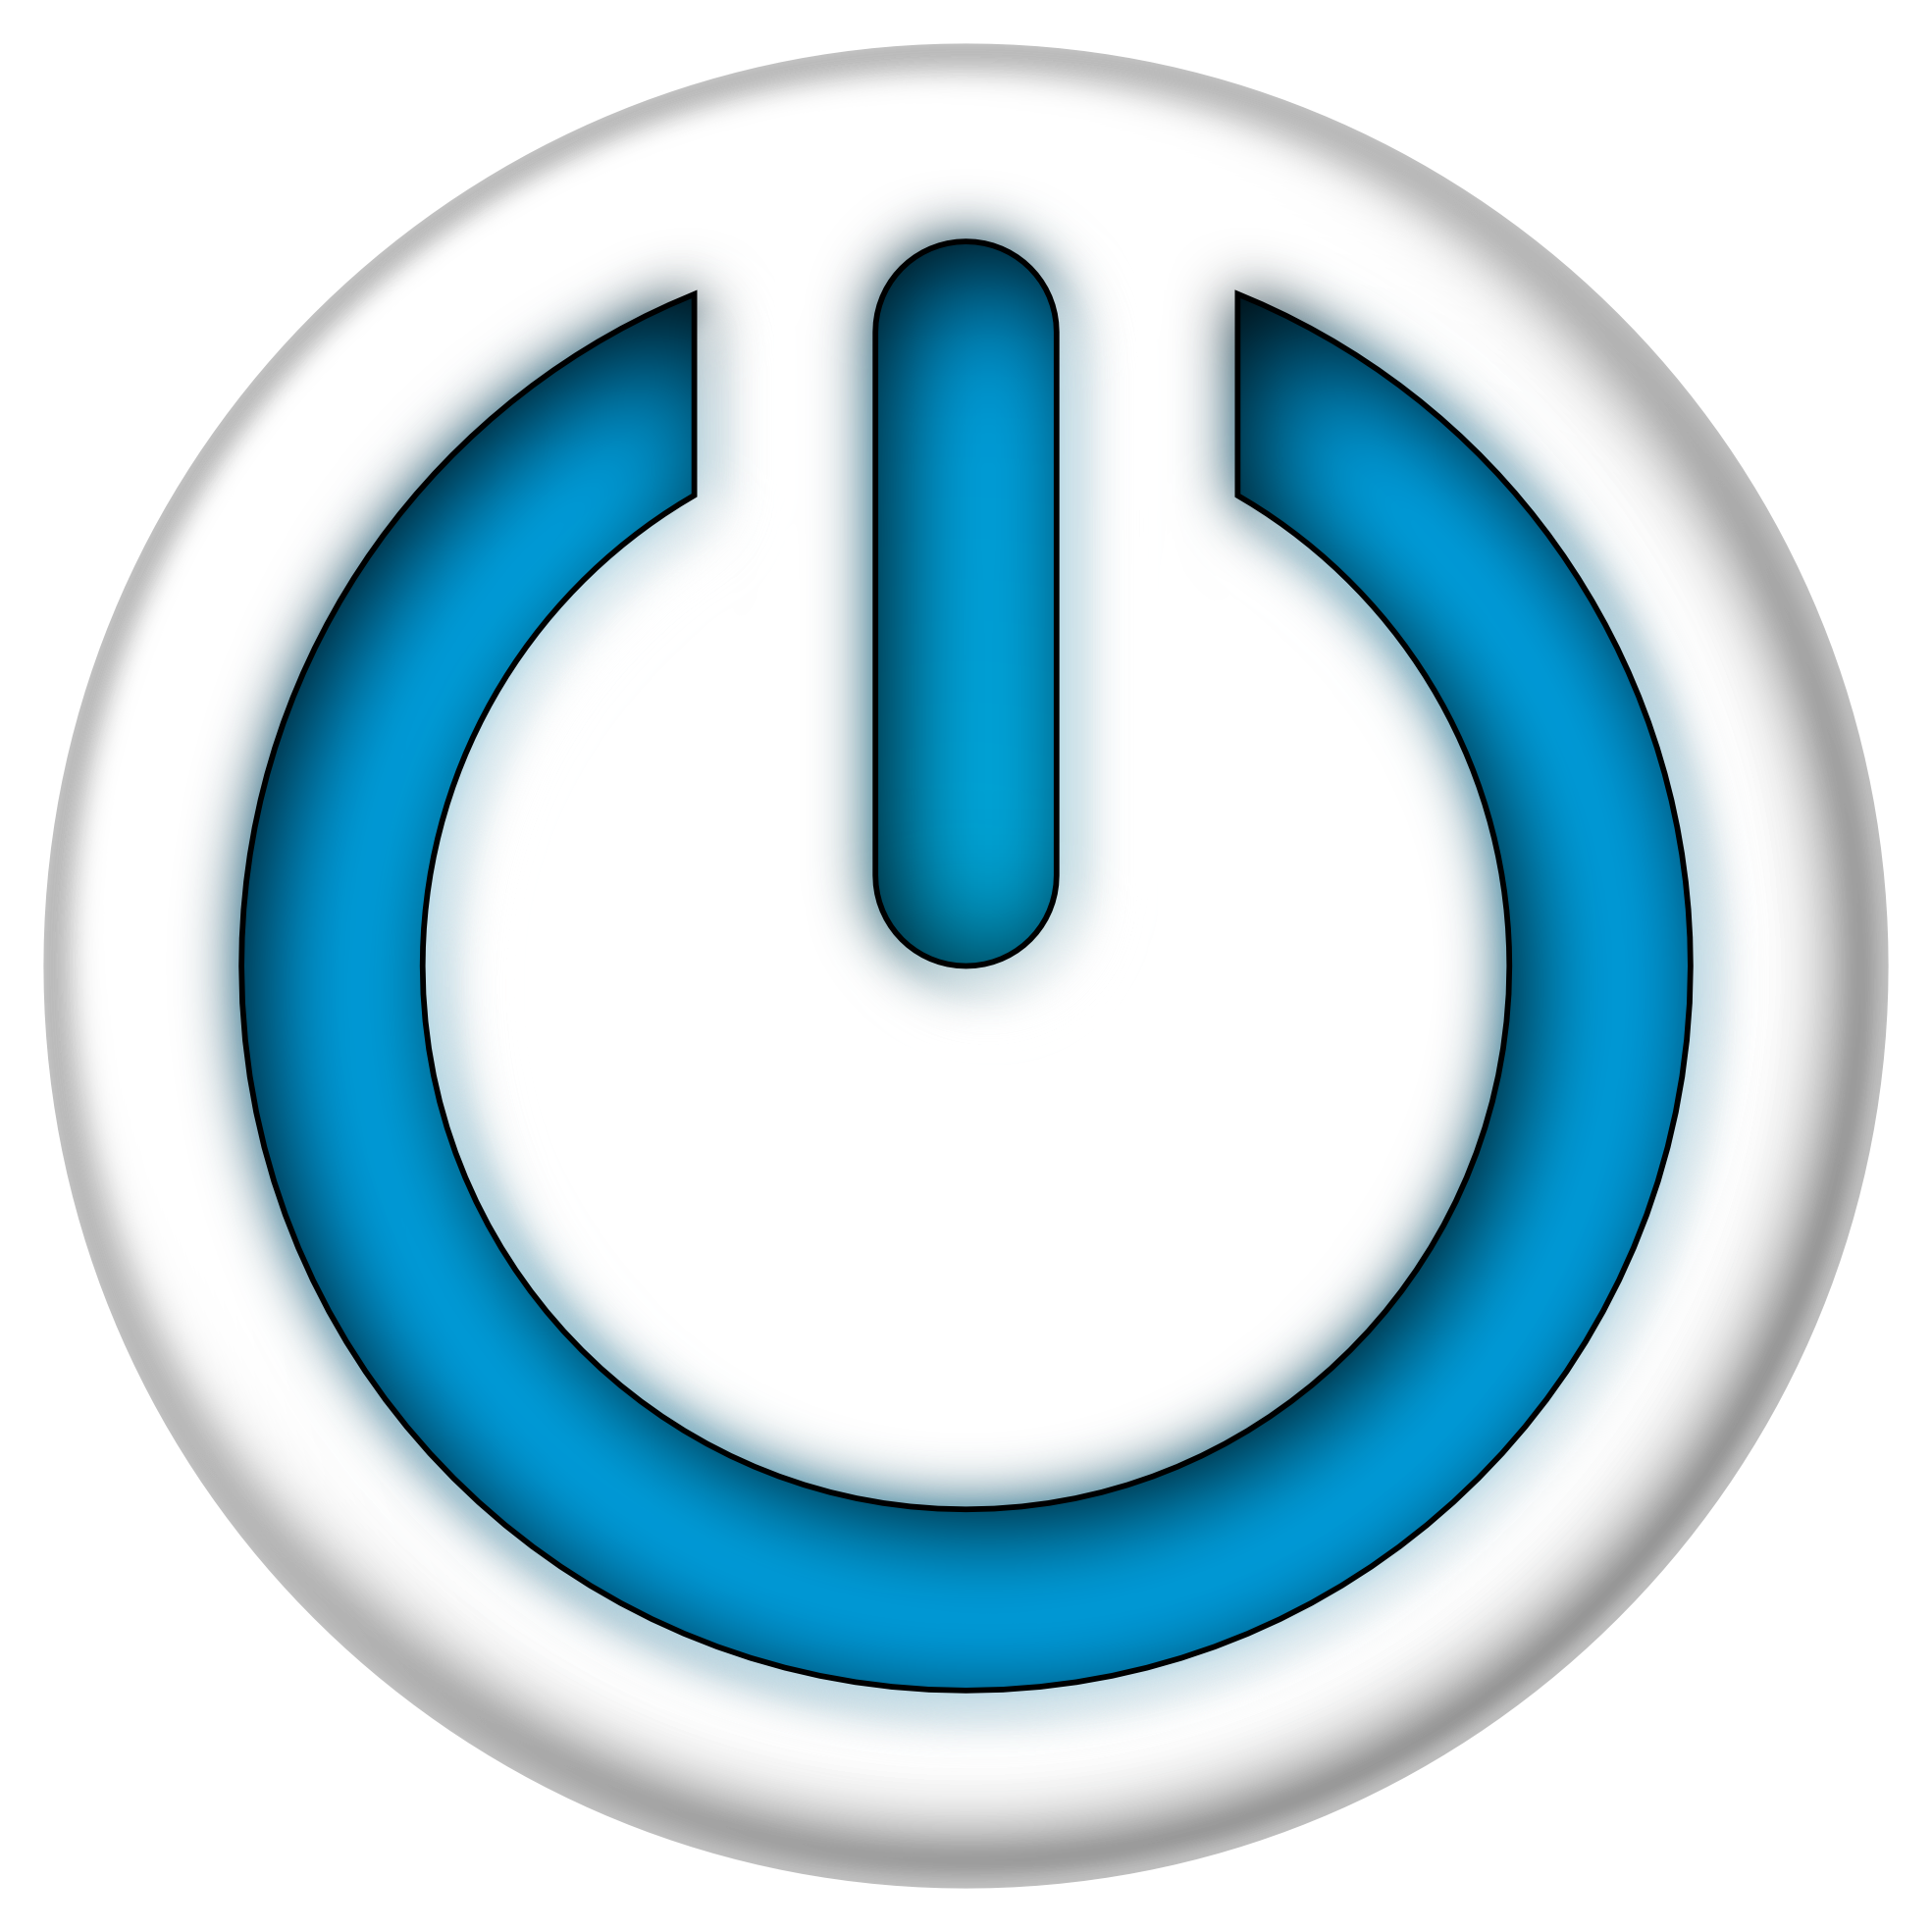 image blue power sign button 1969px png the amazing world of rh theamazingworldofgumball wikia com